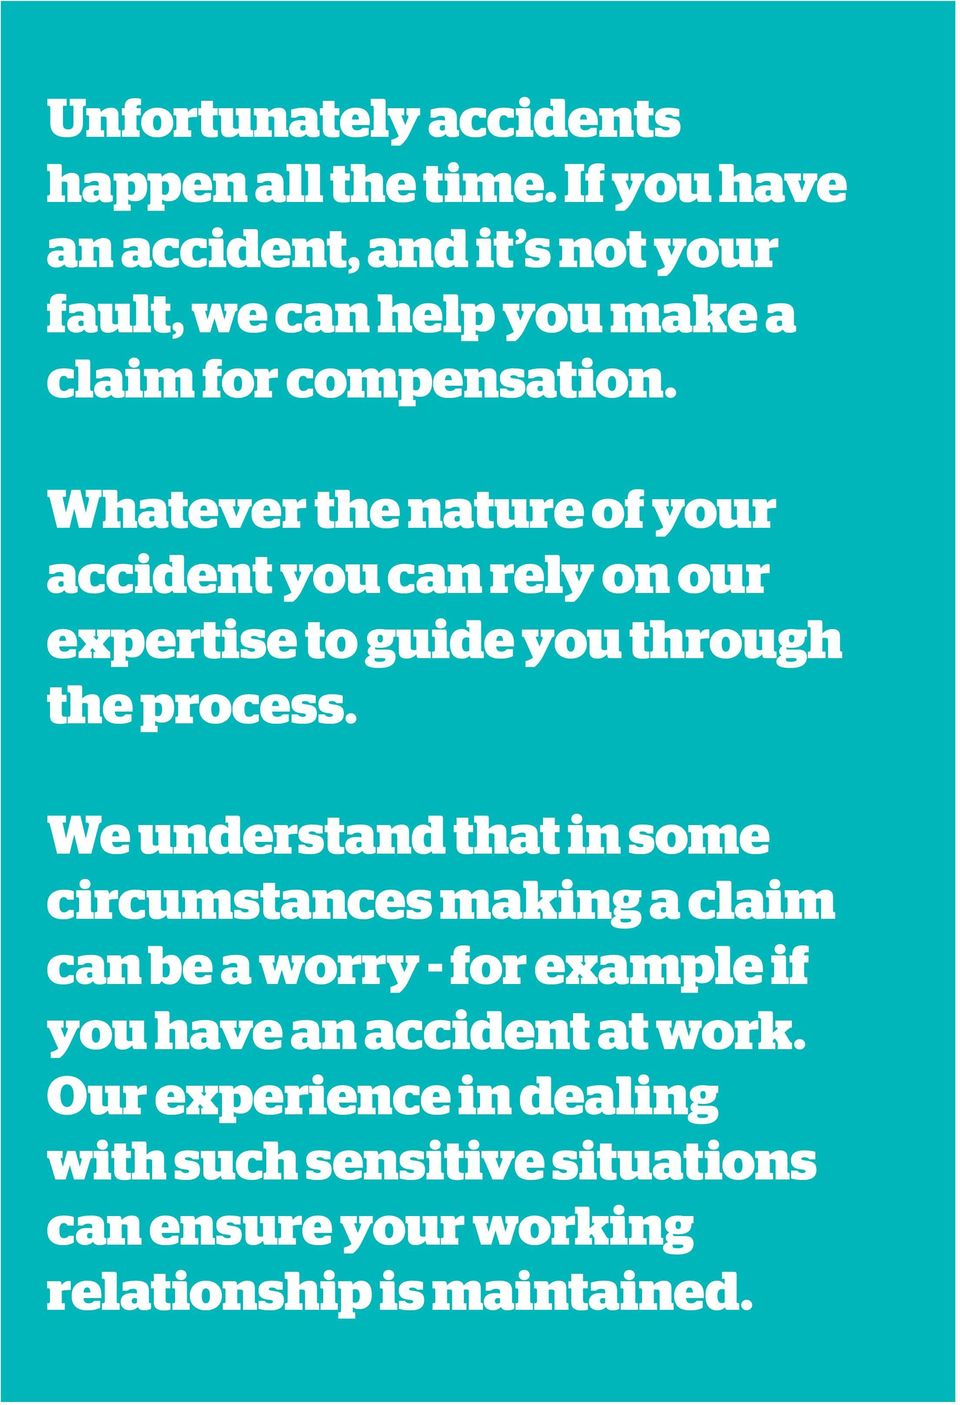 Whatever the nature of your accident you can rely on our expertise to guide you through the process.